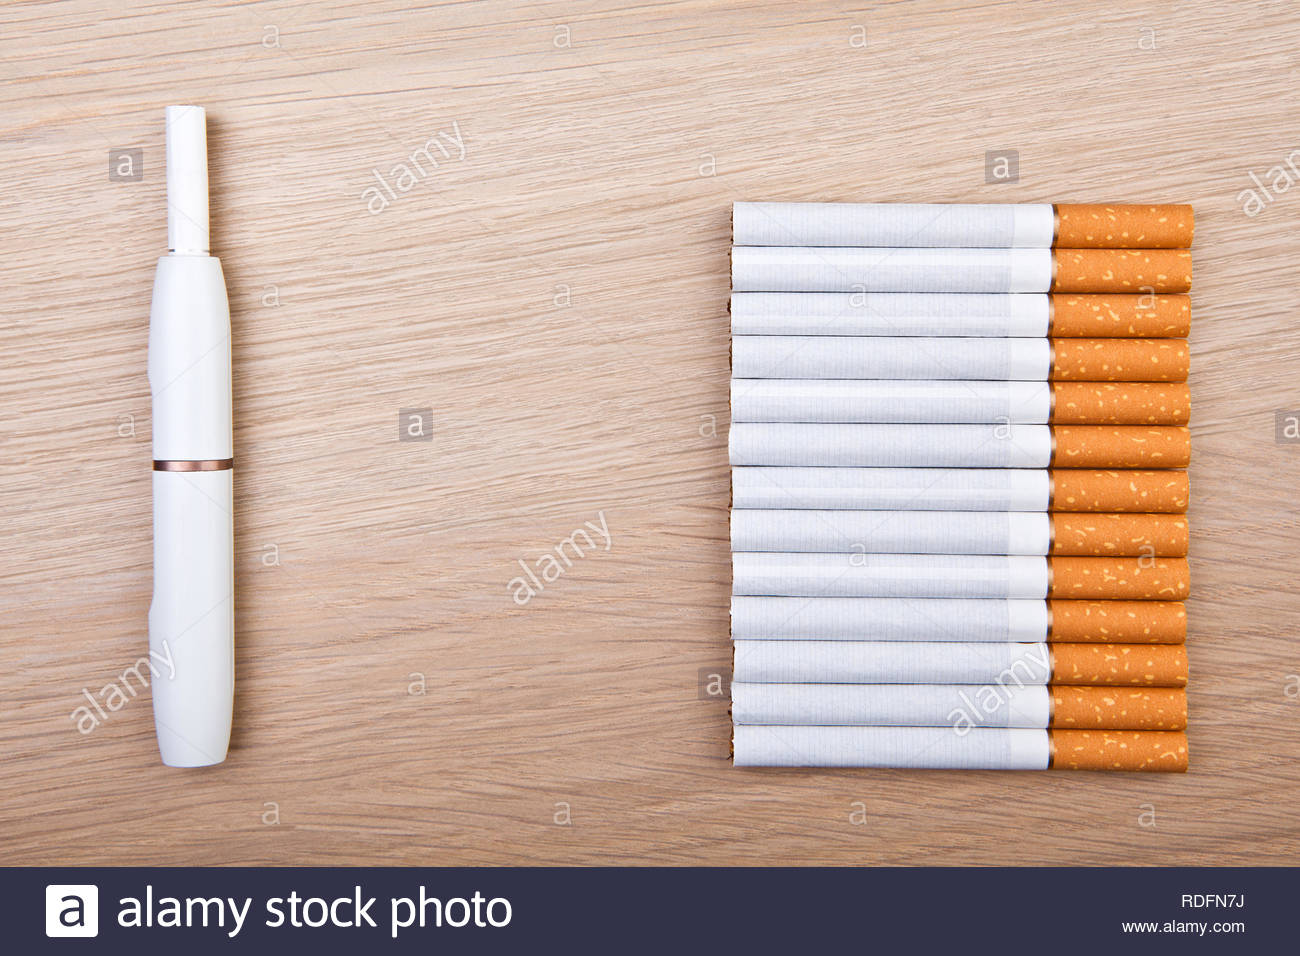 electronic smoke device cigarette wooden table nobody - Stock Image